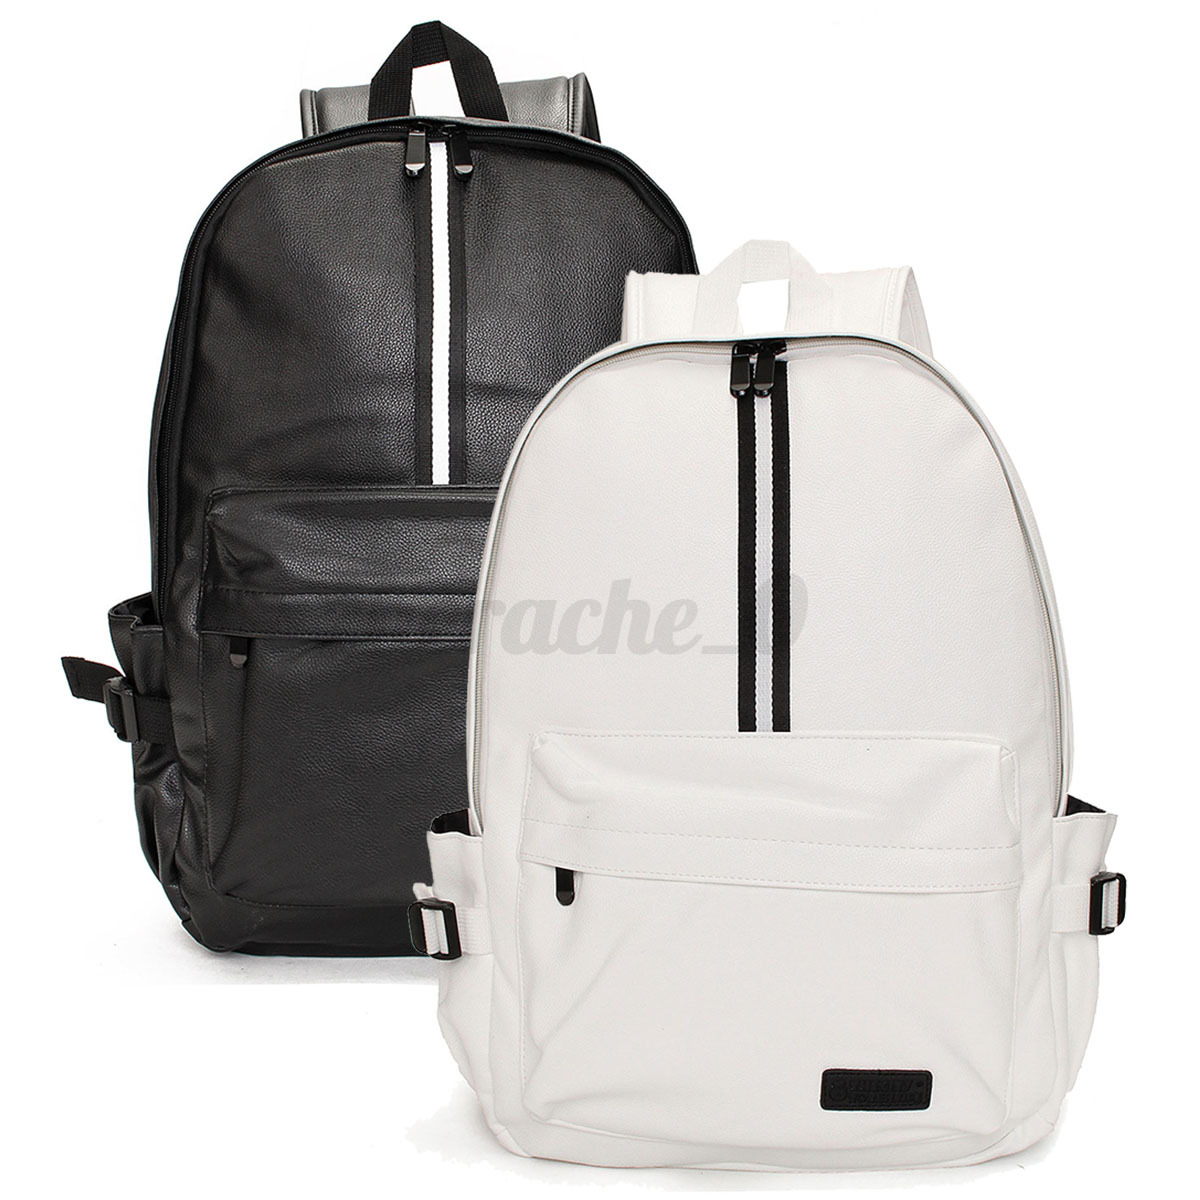 Sep 30,  · buy backpacks men bags in low price, Backpacks bags for Men – Buy from the latest collection of online Backpacks men bags in best price. Shop for leather, polyester, cotton, PU and more Backpacks, Buy school, casual, formal, bags in low price, backpacks for girls, travel, types of Backpacks Discount Upto 50% to 70% only on distrib-wq9rfuqq.tk